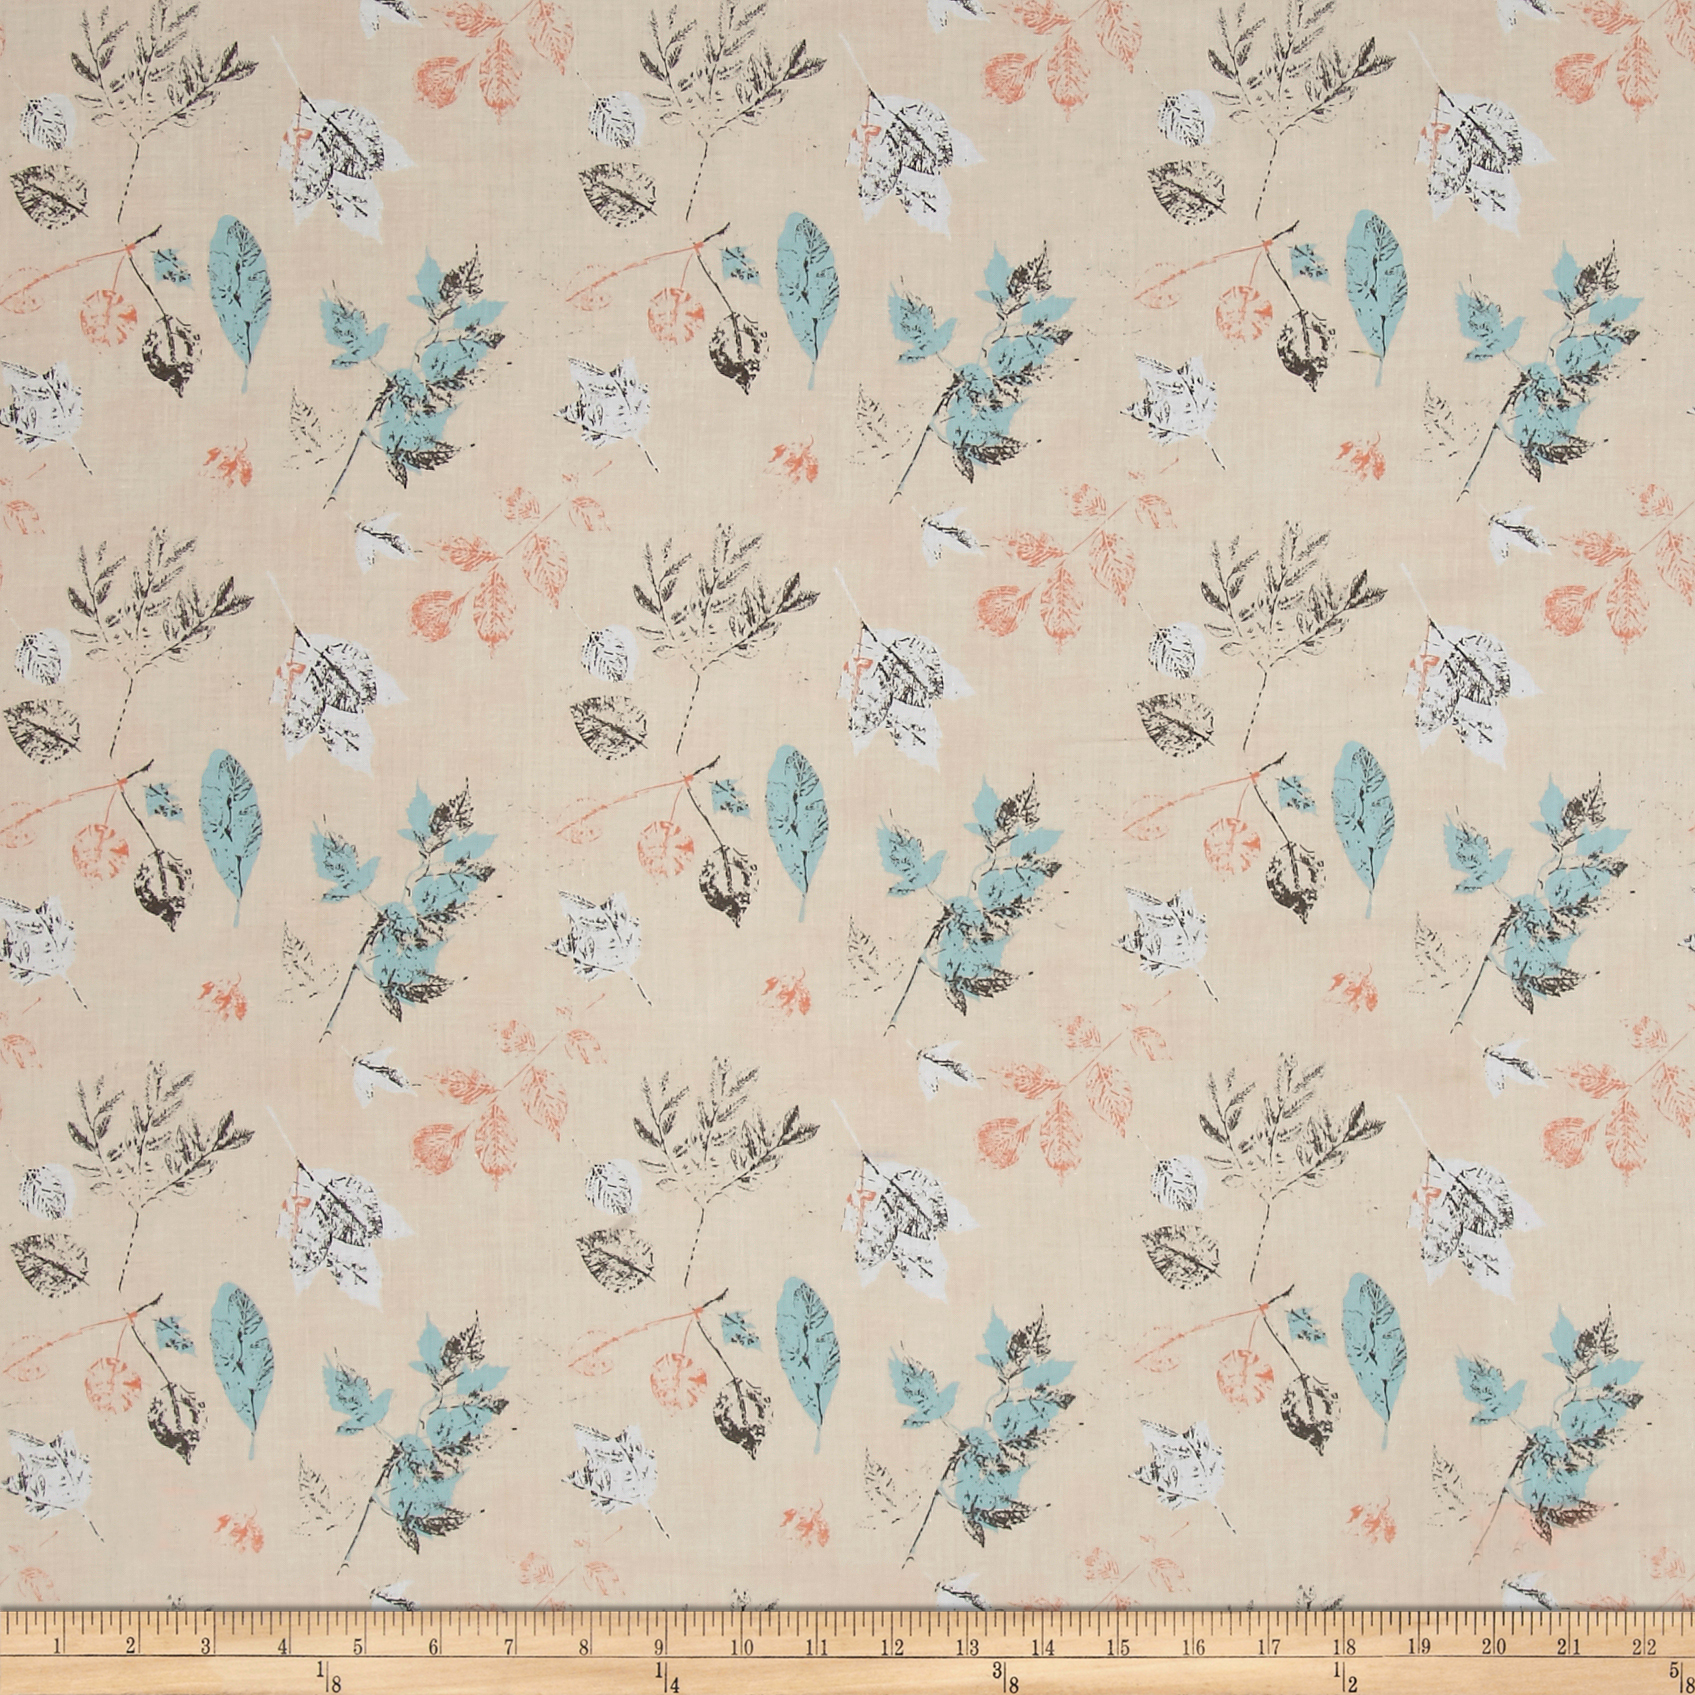 Art Gallery Bountiful Voile Arborescent Seasons Fabric by Art Gallery in USA